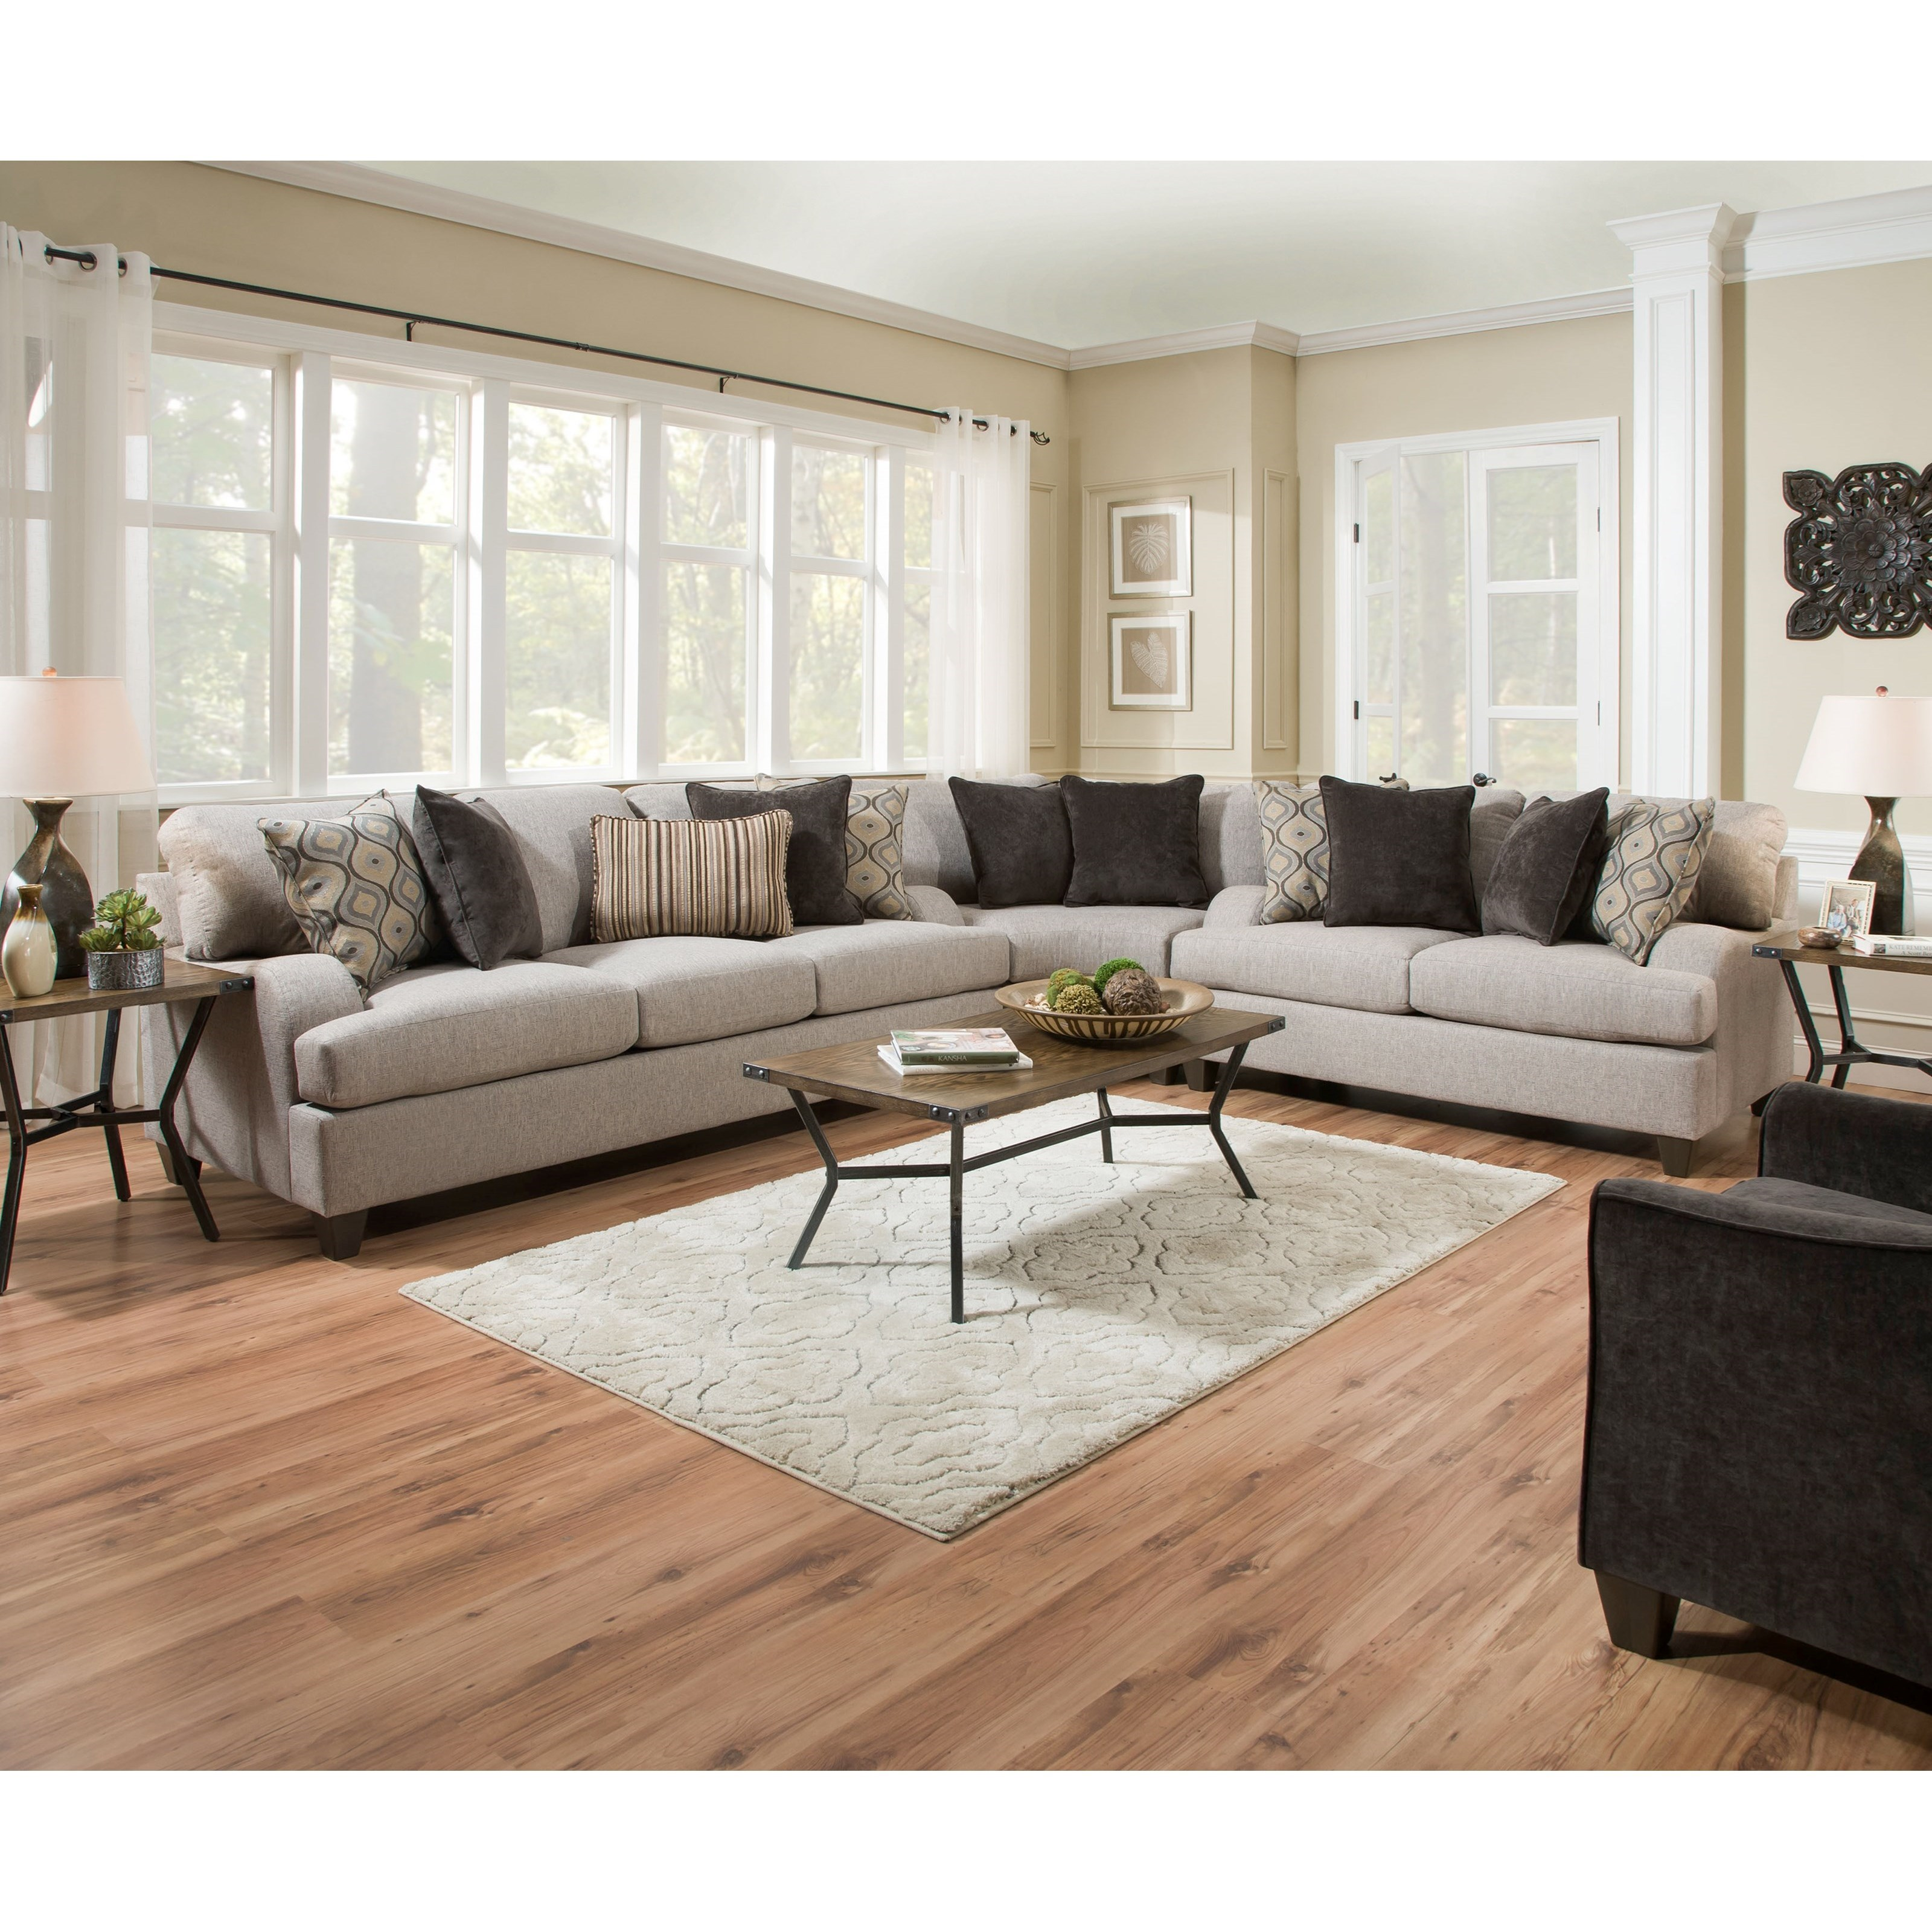 8642 transitional sectional sofa with chaise by albany sage green table united furniture industries